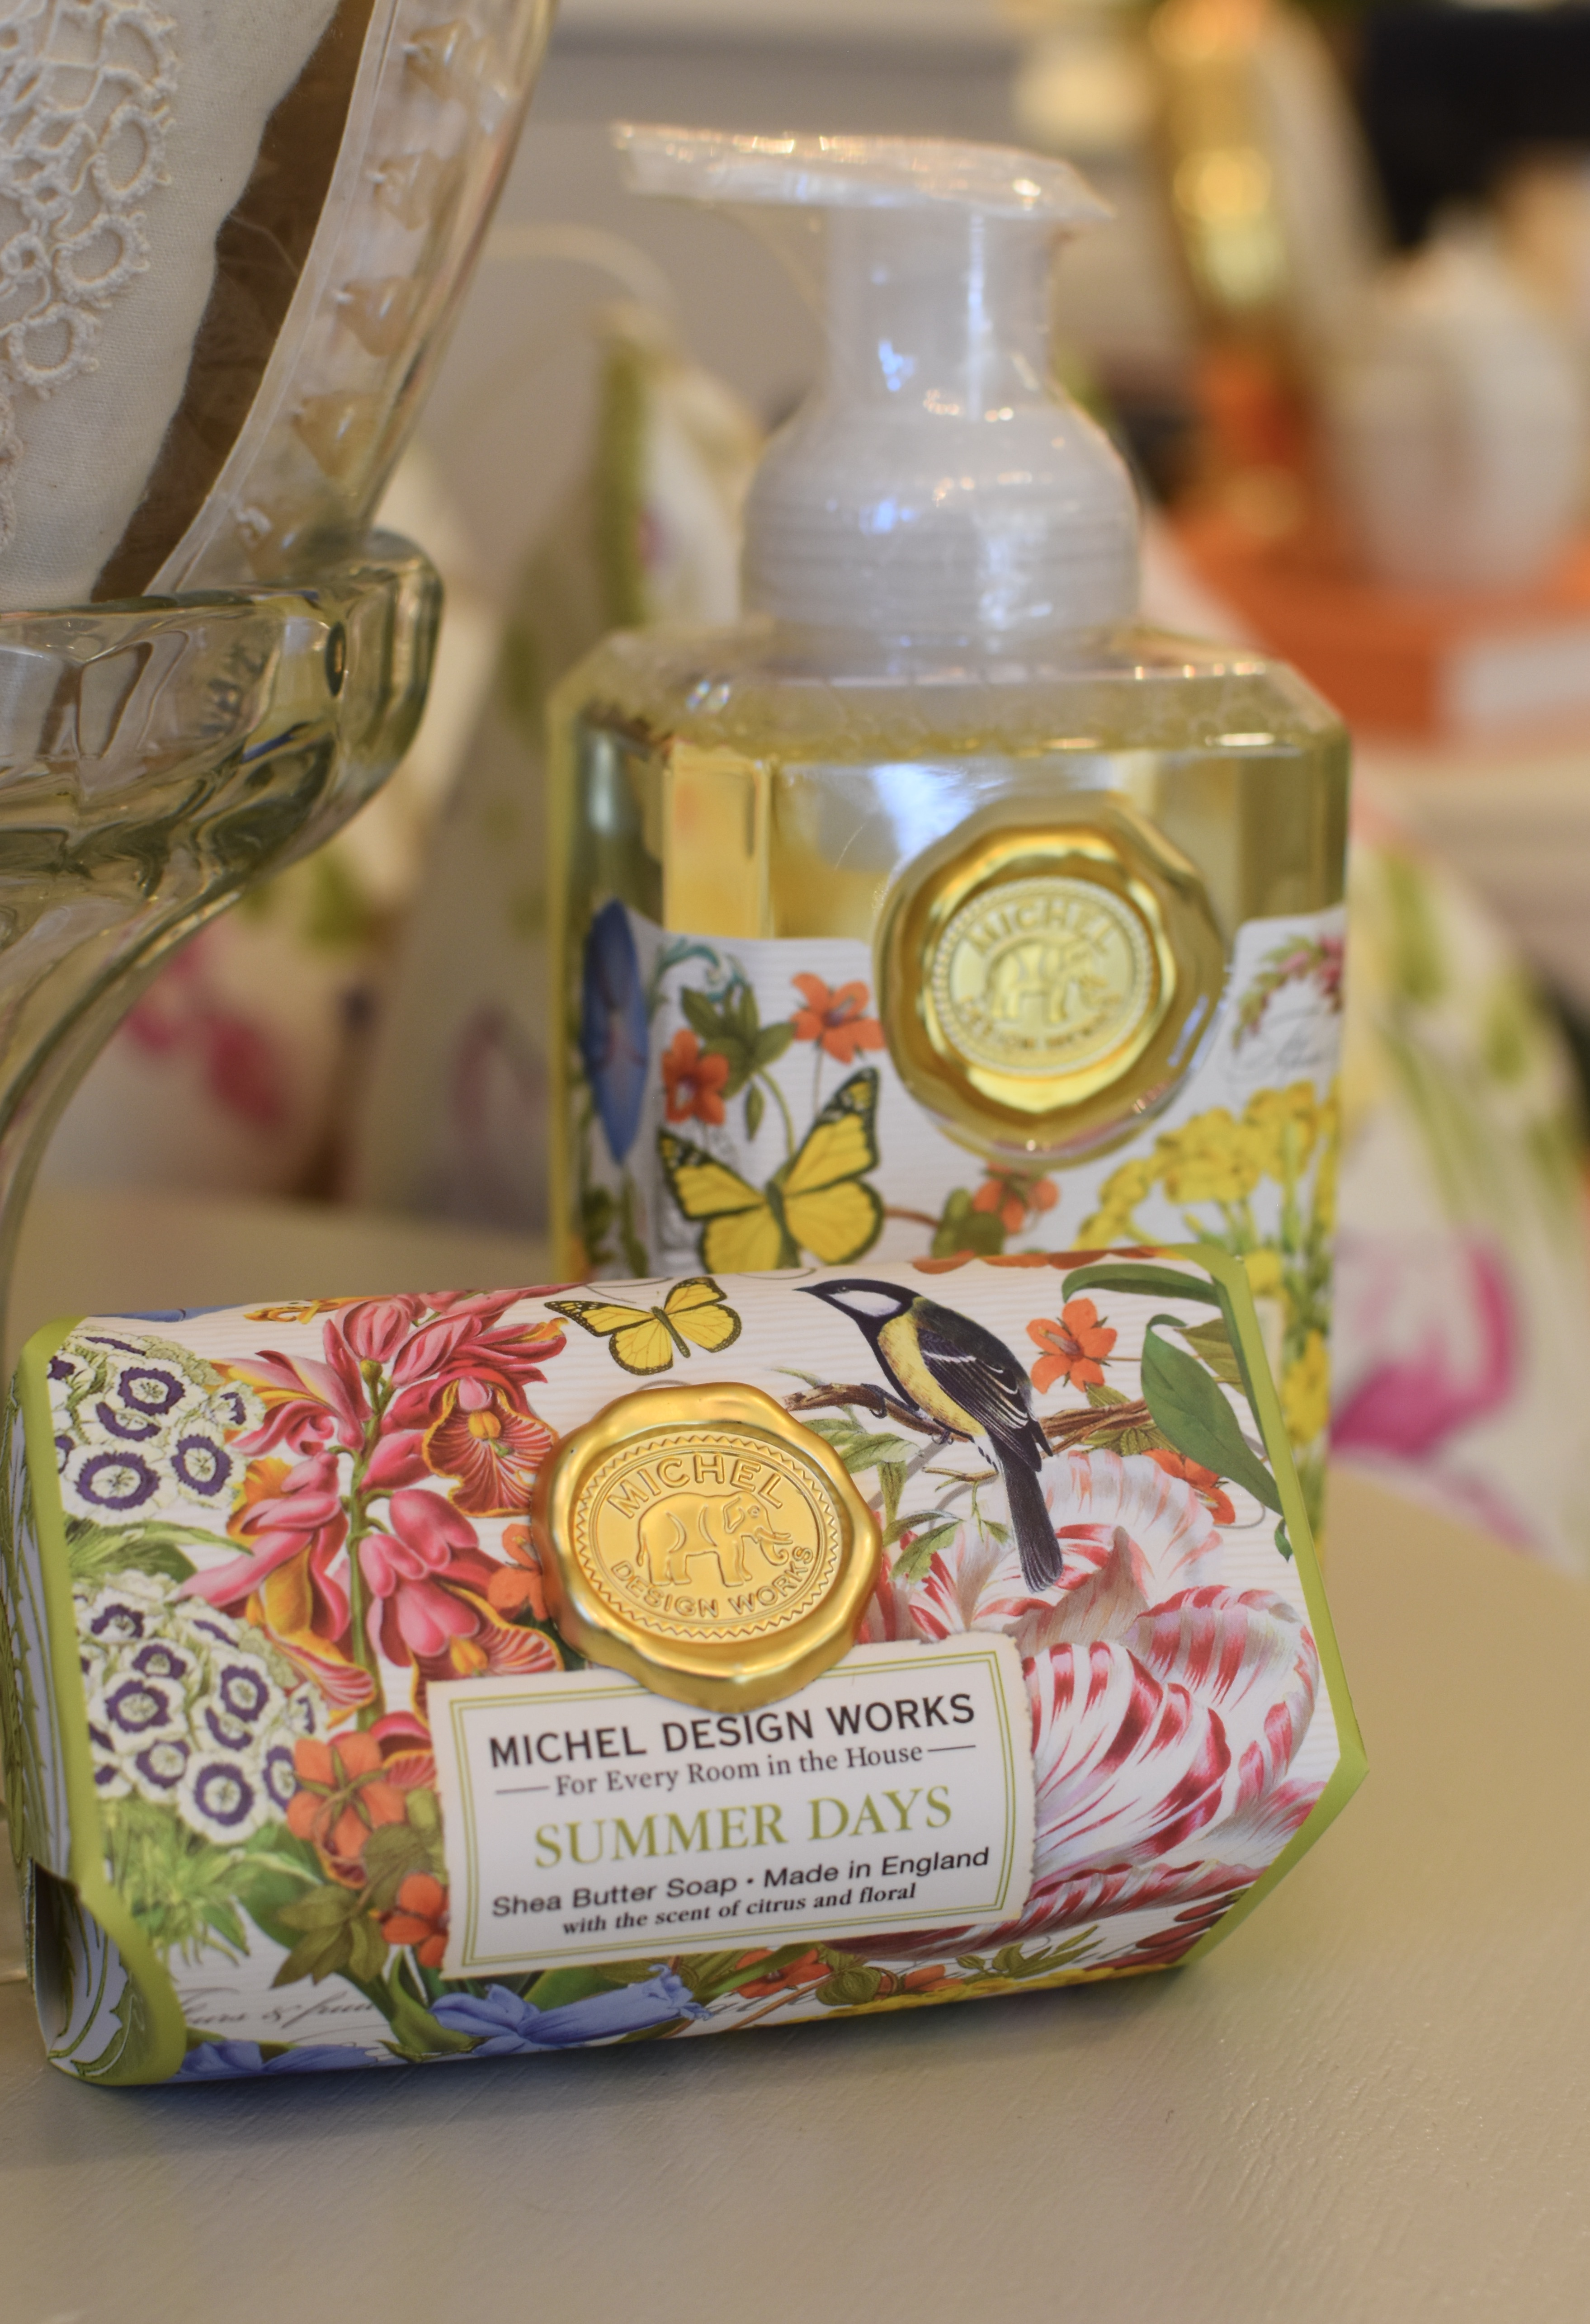 Summer Days Foaming Soap and Bar Soap